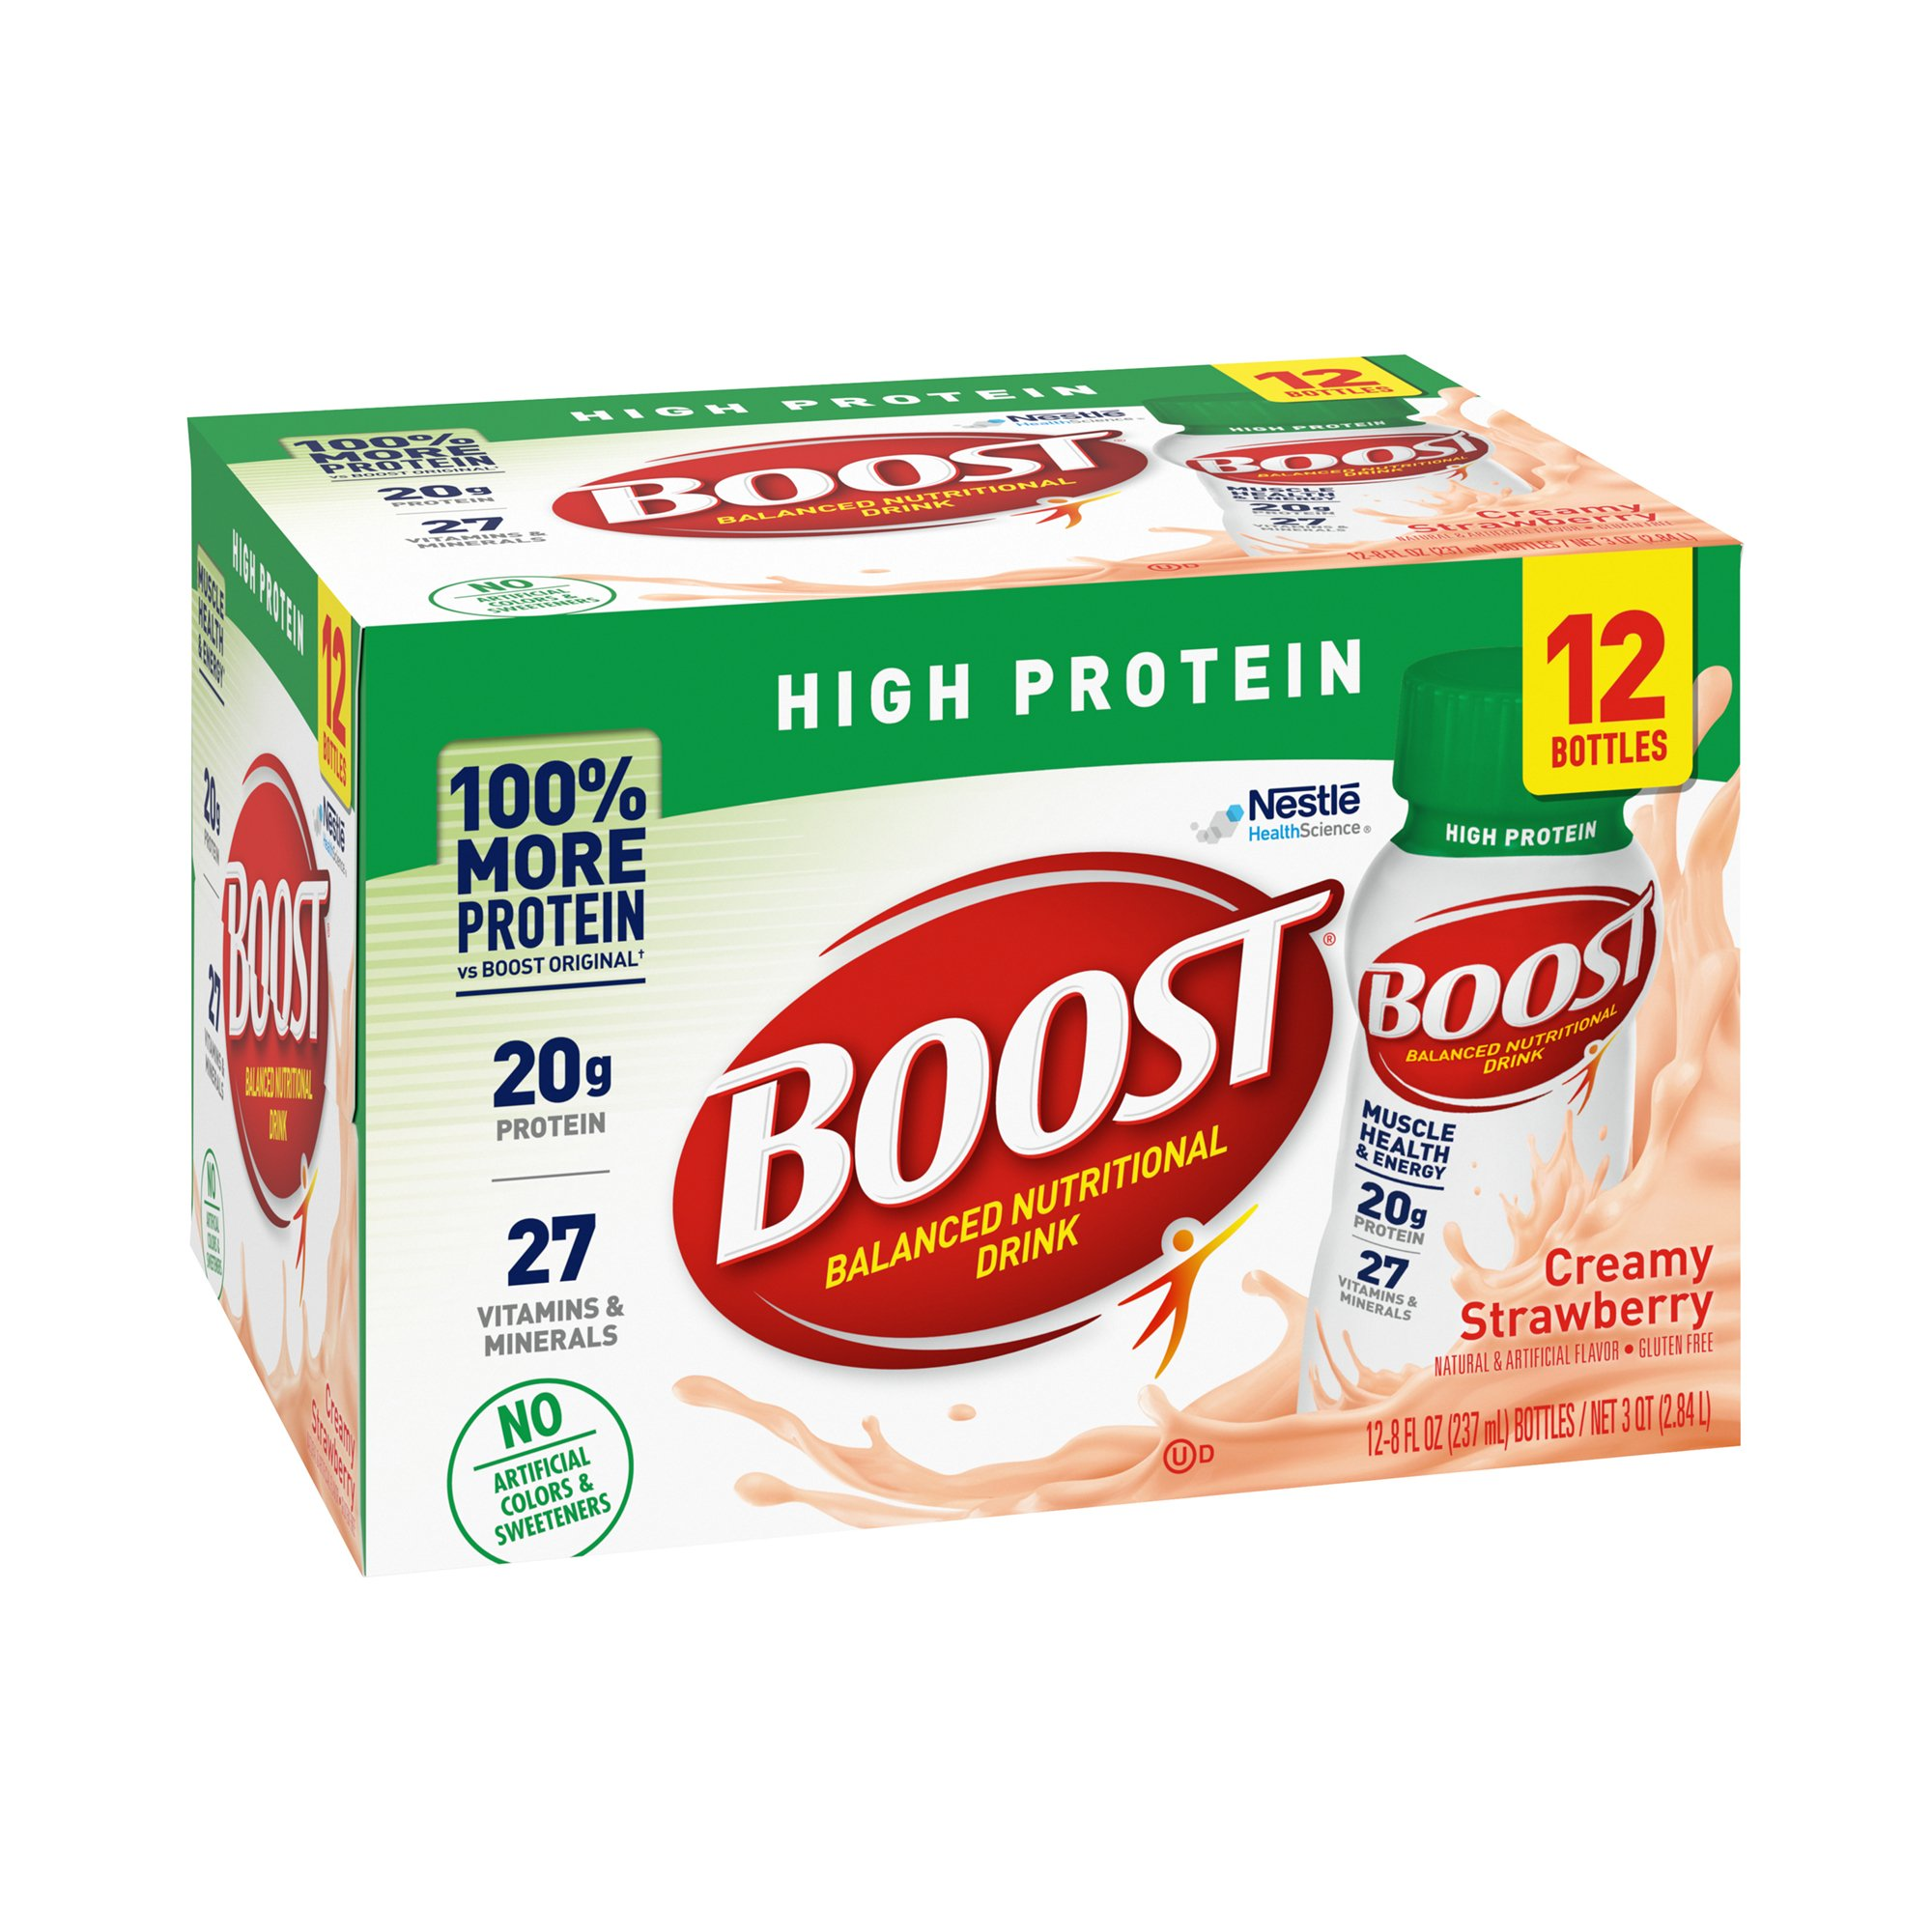 Boost High Protein Balanced Nutritional Drink, 8 oz., Creamy Strawberry, 12384278, Pack of 12